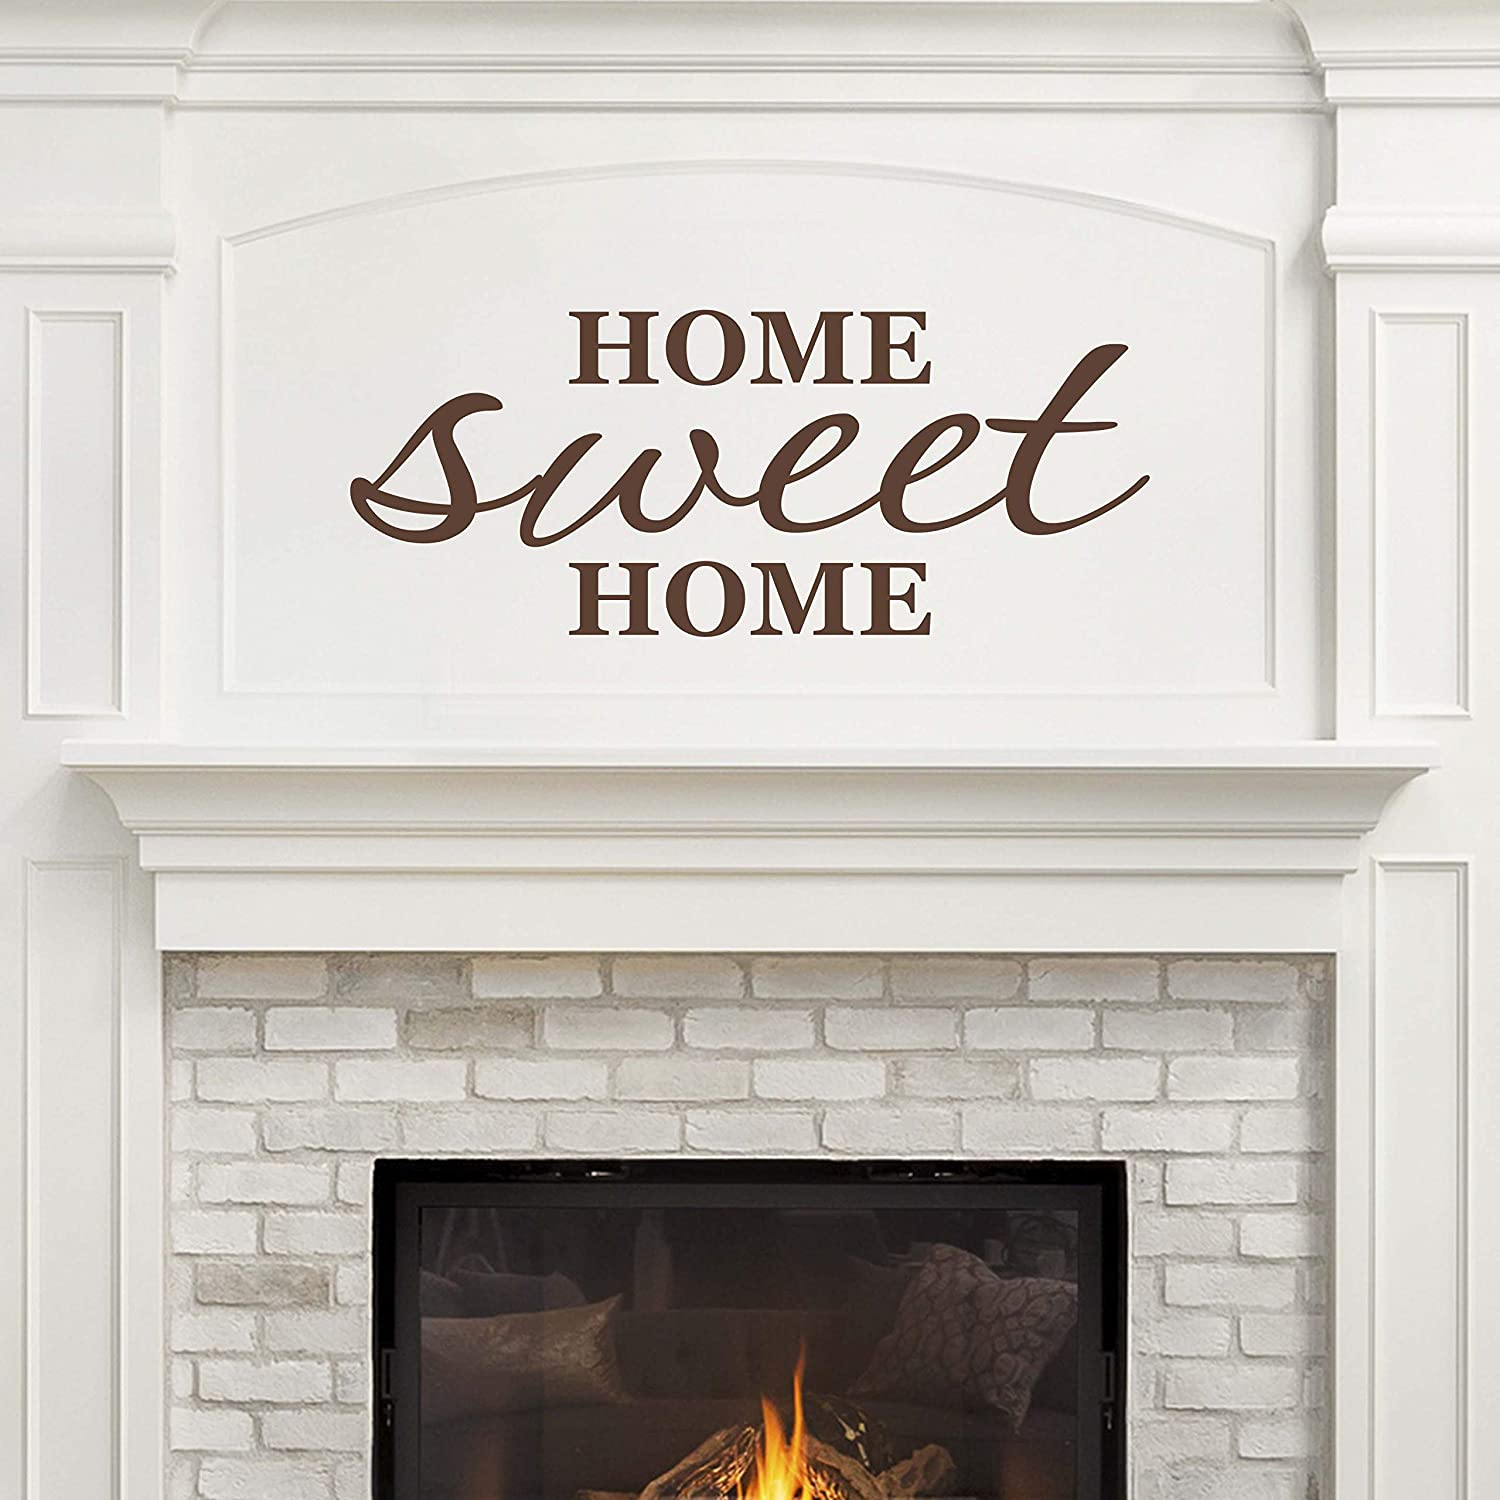 Vinyl Quote Me Home Sweet Home Wall Decal   Living Room Wall Decor   Farmhouse Room Decor   Welcome Home   Made in America   22x9-Brown